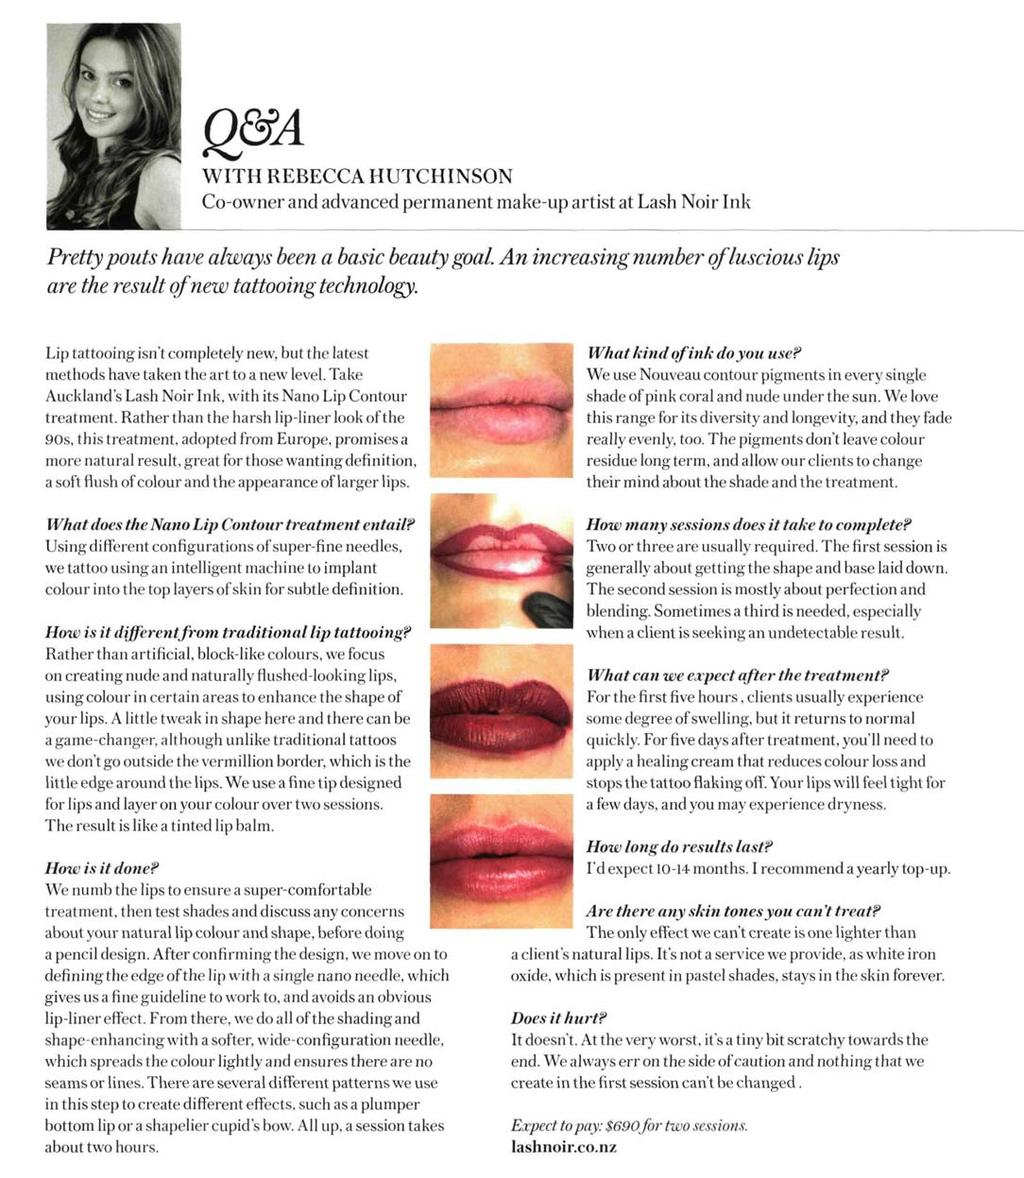 ID 909071985 BRIEF MEDIAJ(W INDEX 1 PAGE 8 of 9 Q&A WITH REBECCA HUTCHINSON Co-owner and advanced permanent make-up artist at Lash Noir Ink Pretty pouts have always been a basic beauty goal.